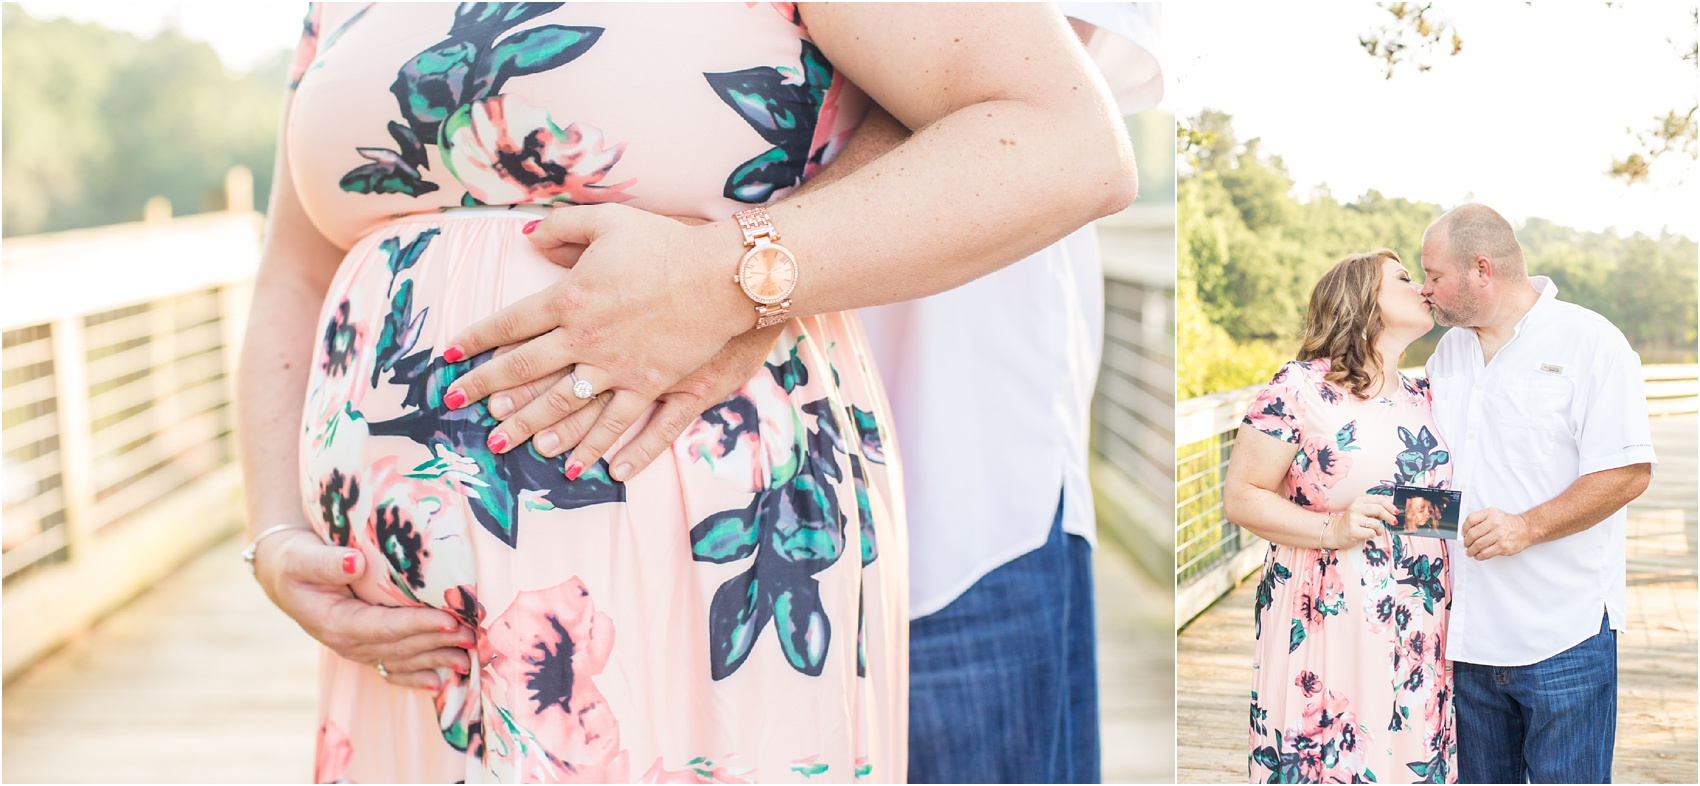 Savannah Eve Photography- Hinton Maternity-7.jpg